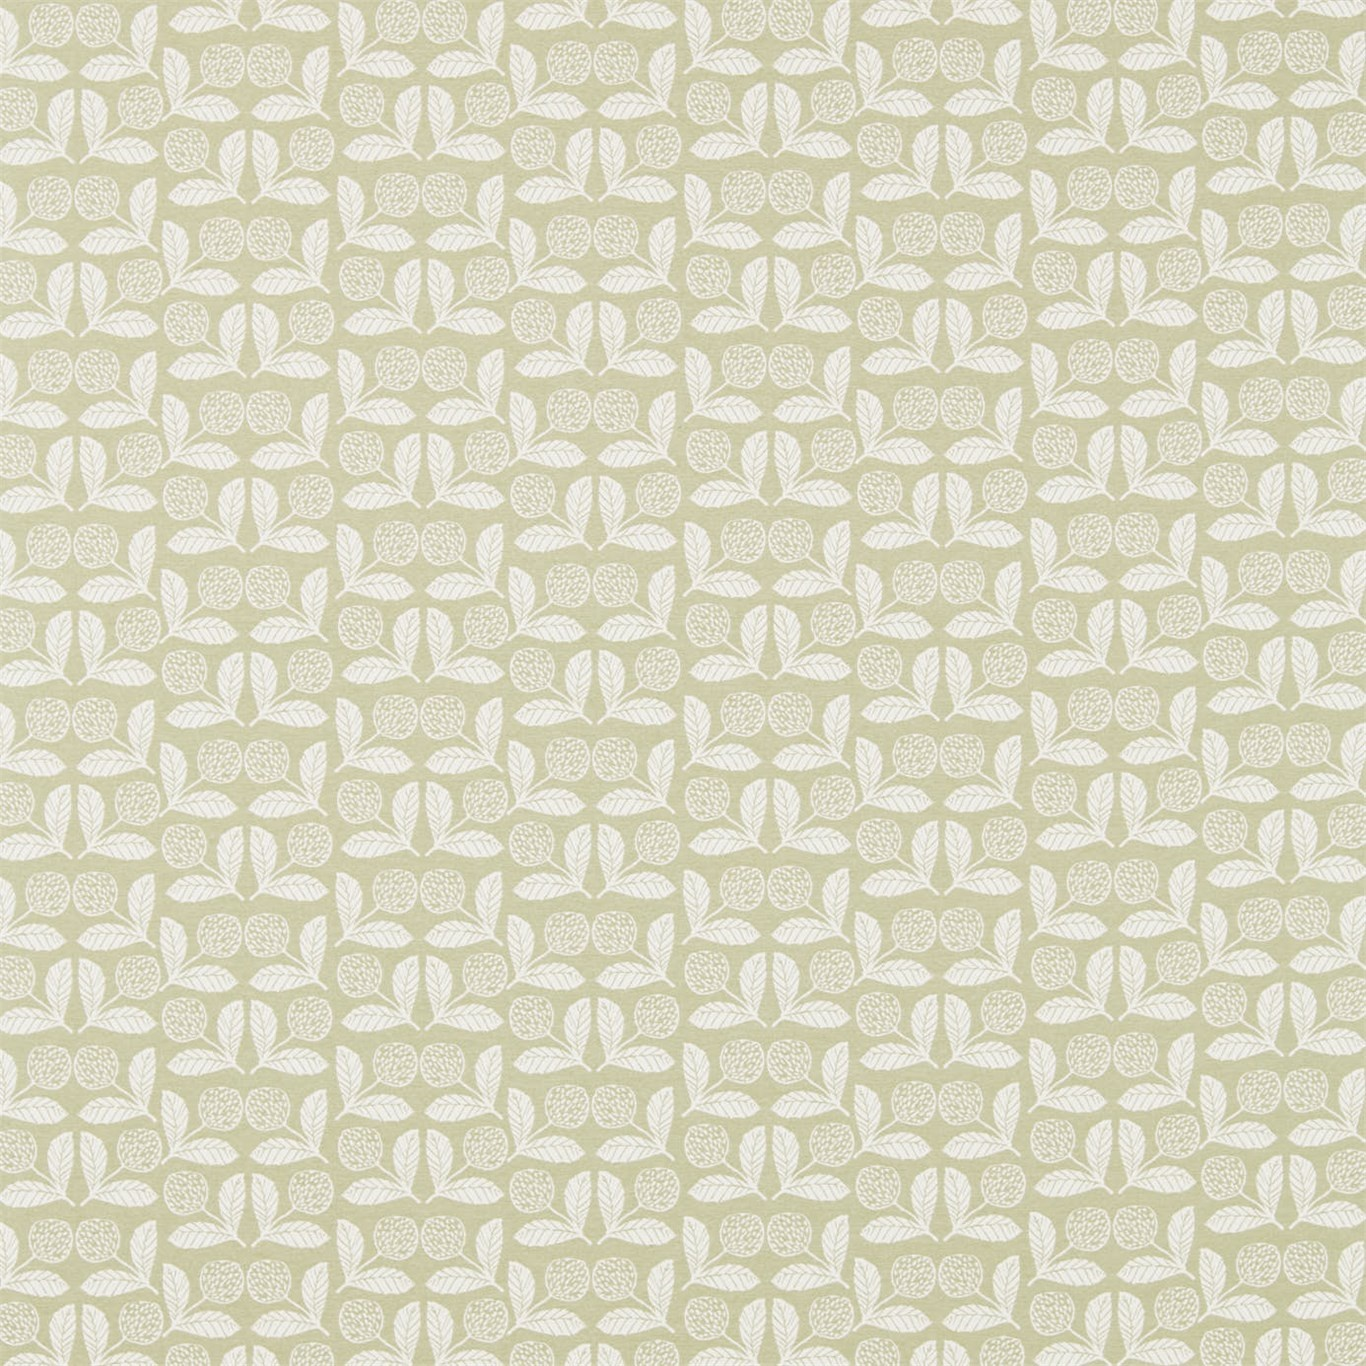 Image of Sanderson Home Seed Stitch Fennel Curtain Fabric 235873